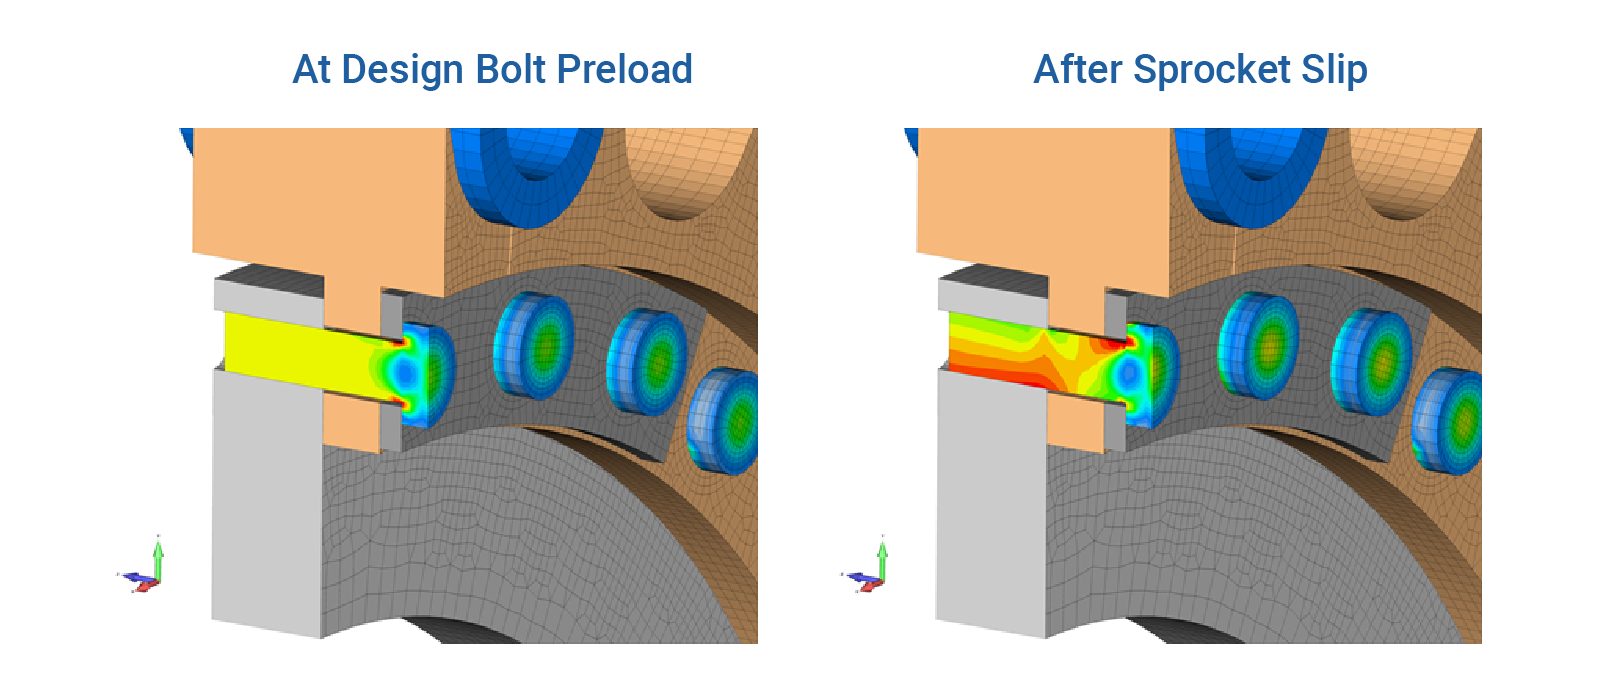 Figure 5:  The bolt stress state at design condition is uniform with only stress peaks under the bolt head.  As slip occurs, the bolt stress state becomes non-uniform and its fatigue life is compromised.